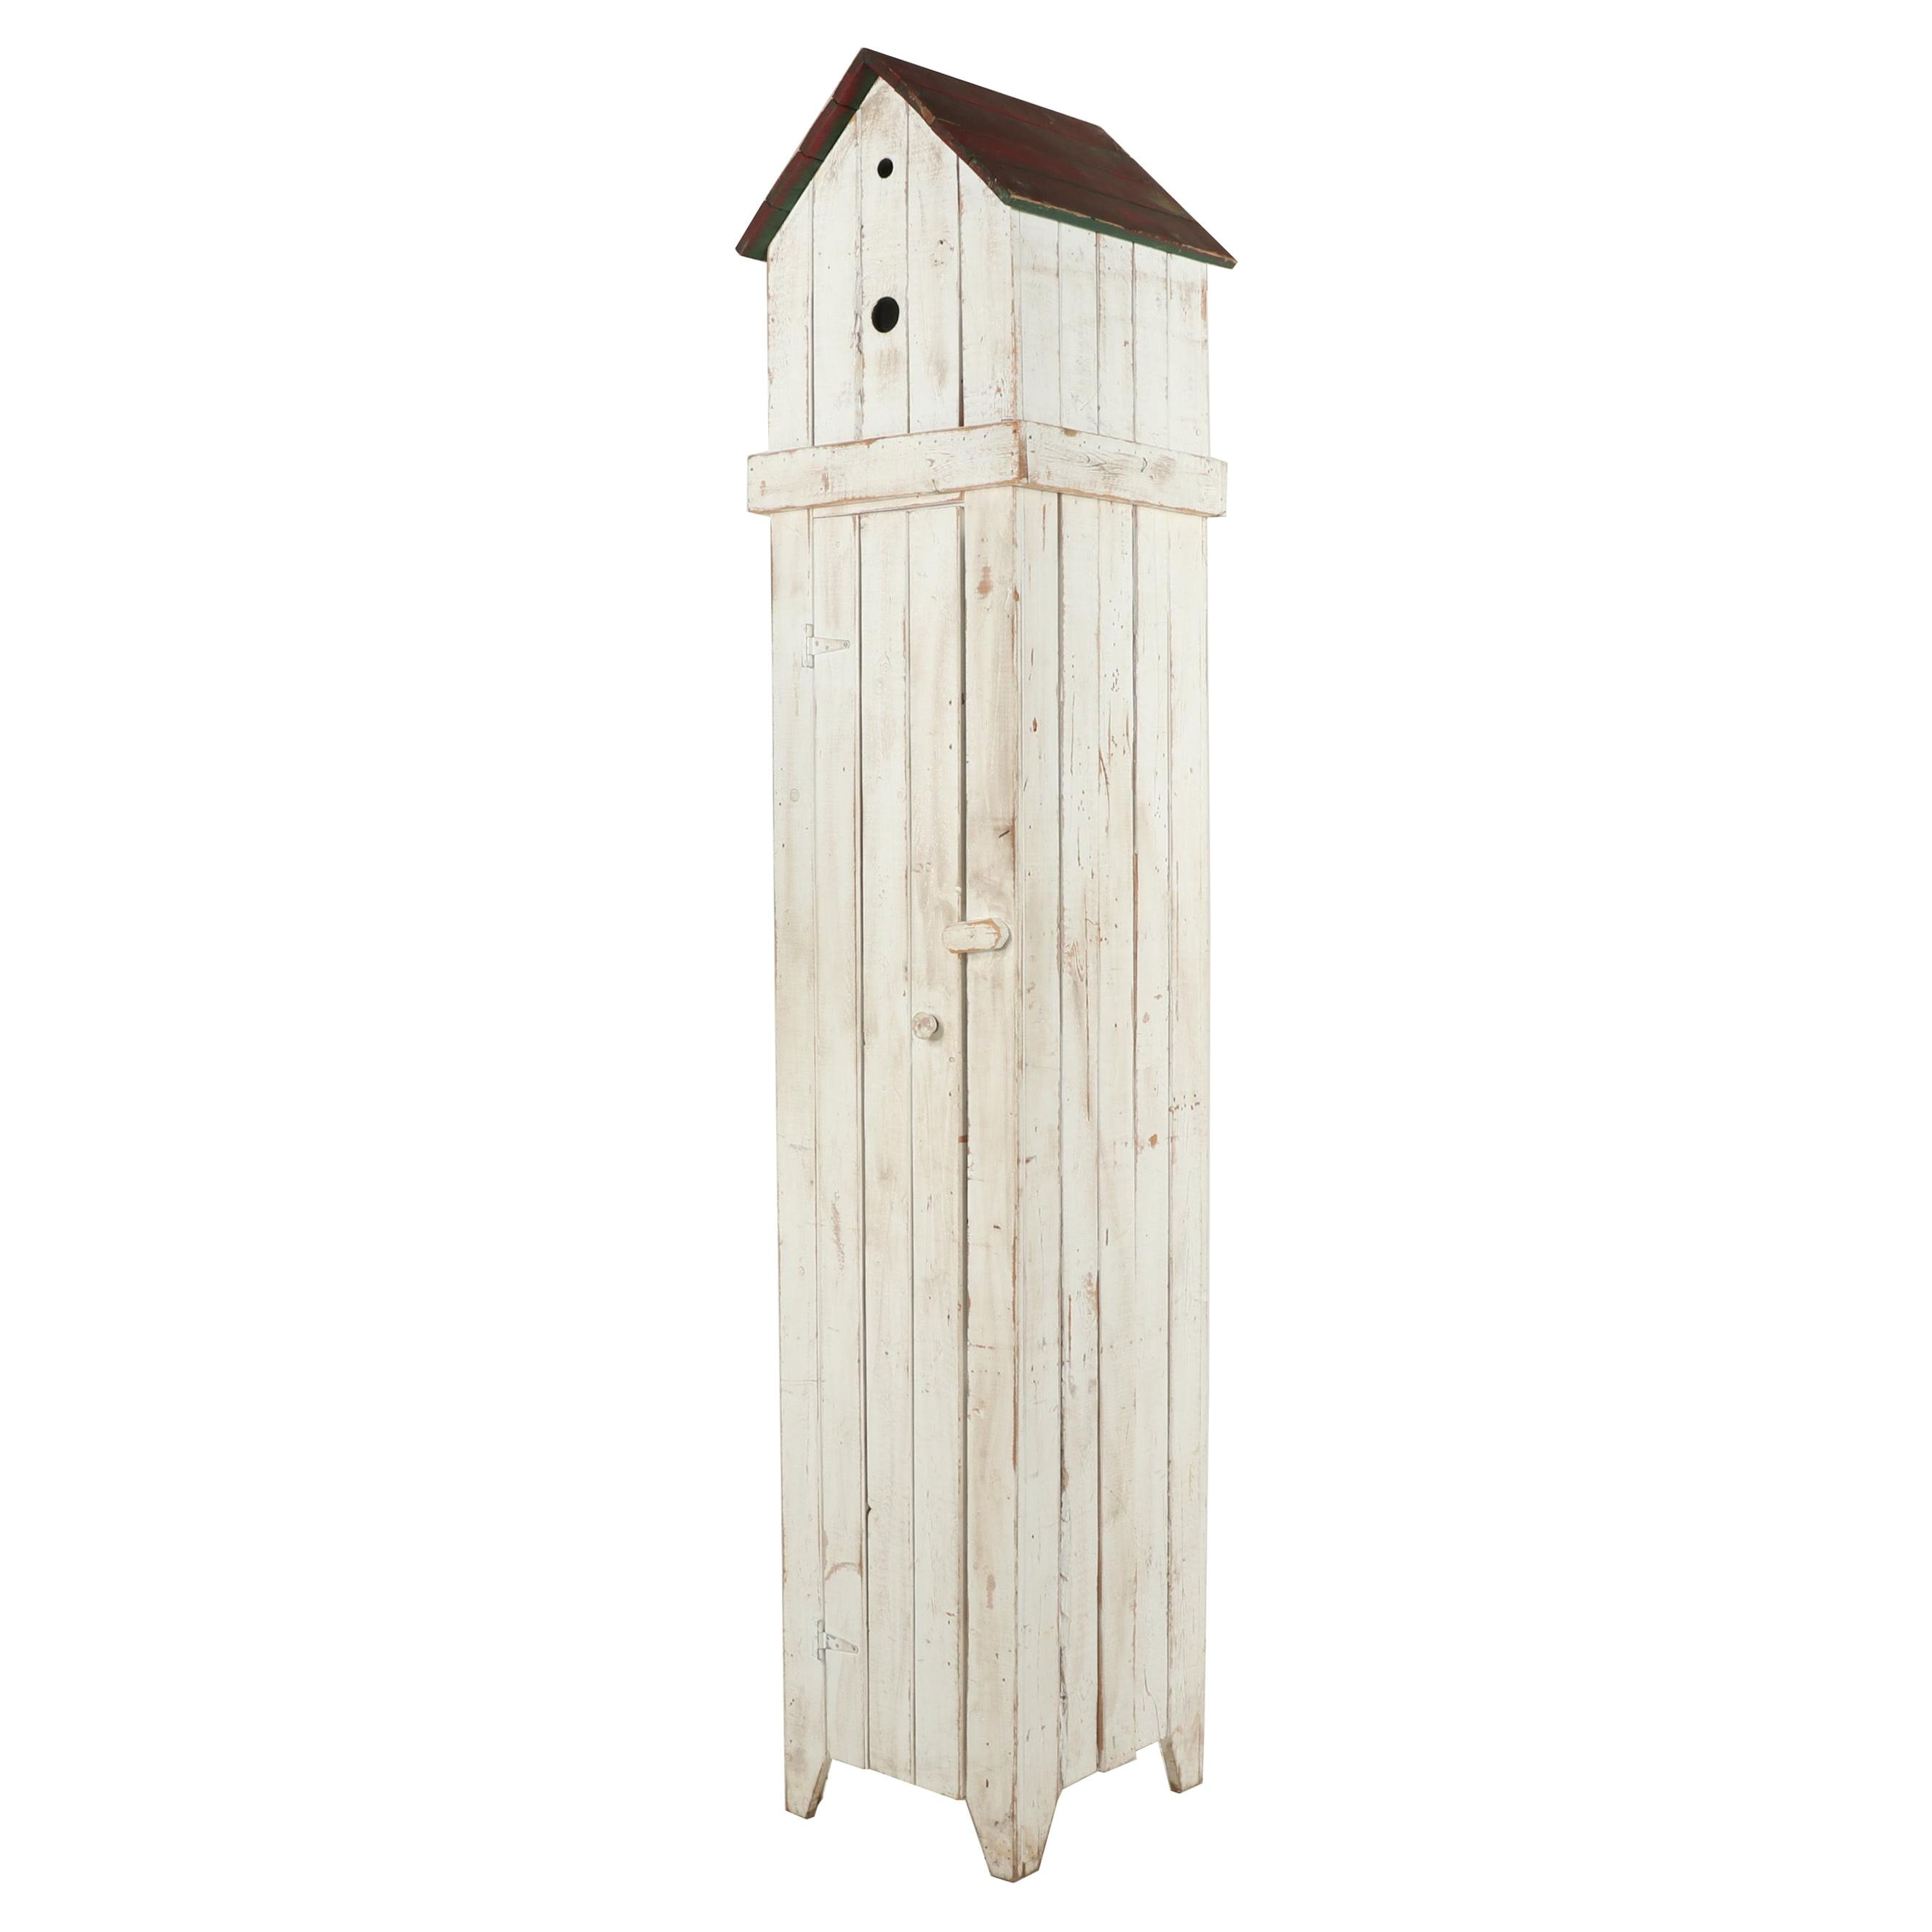 Distressed Finish Birdhouse Motif Lighted Cabinet, Contemporary